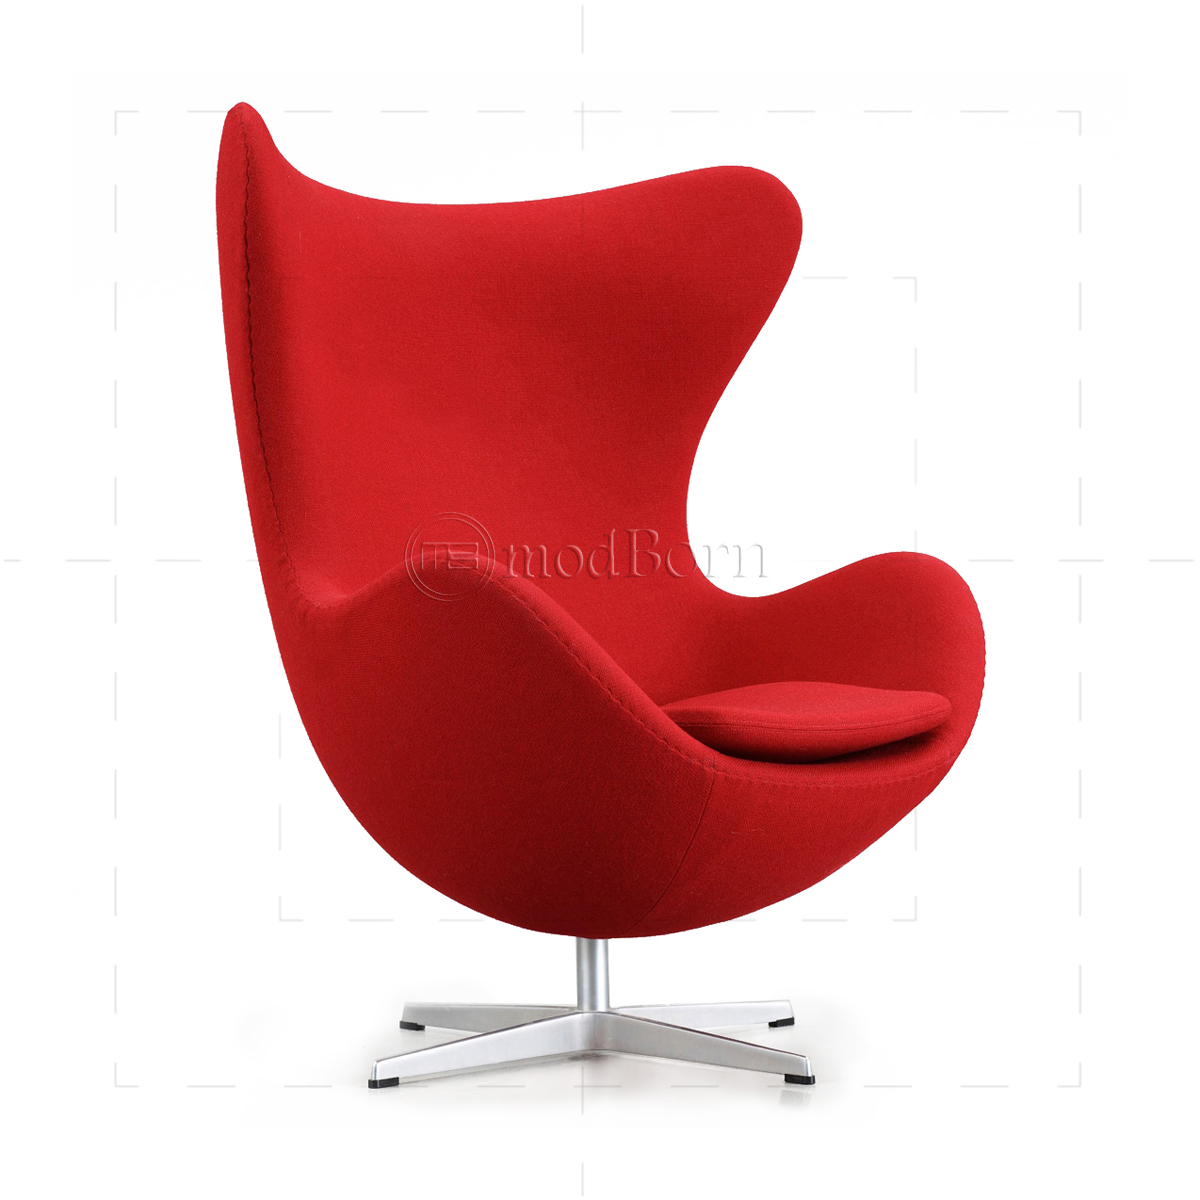 arne jacobsen style egg cashmere wool chair red replica. Black Bedroom Furniture Sets. Home Design Ideas